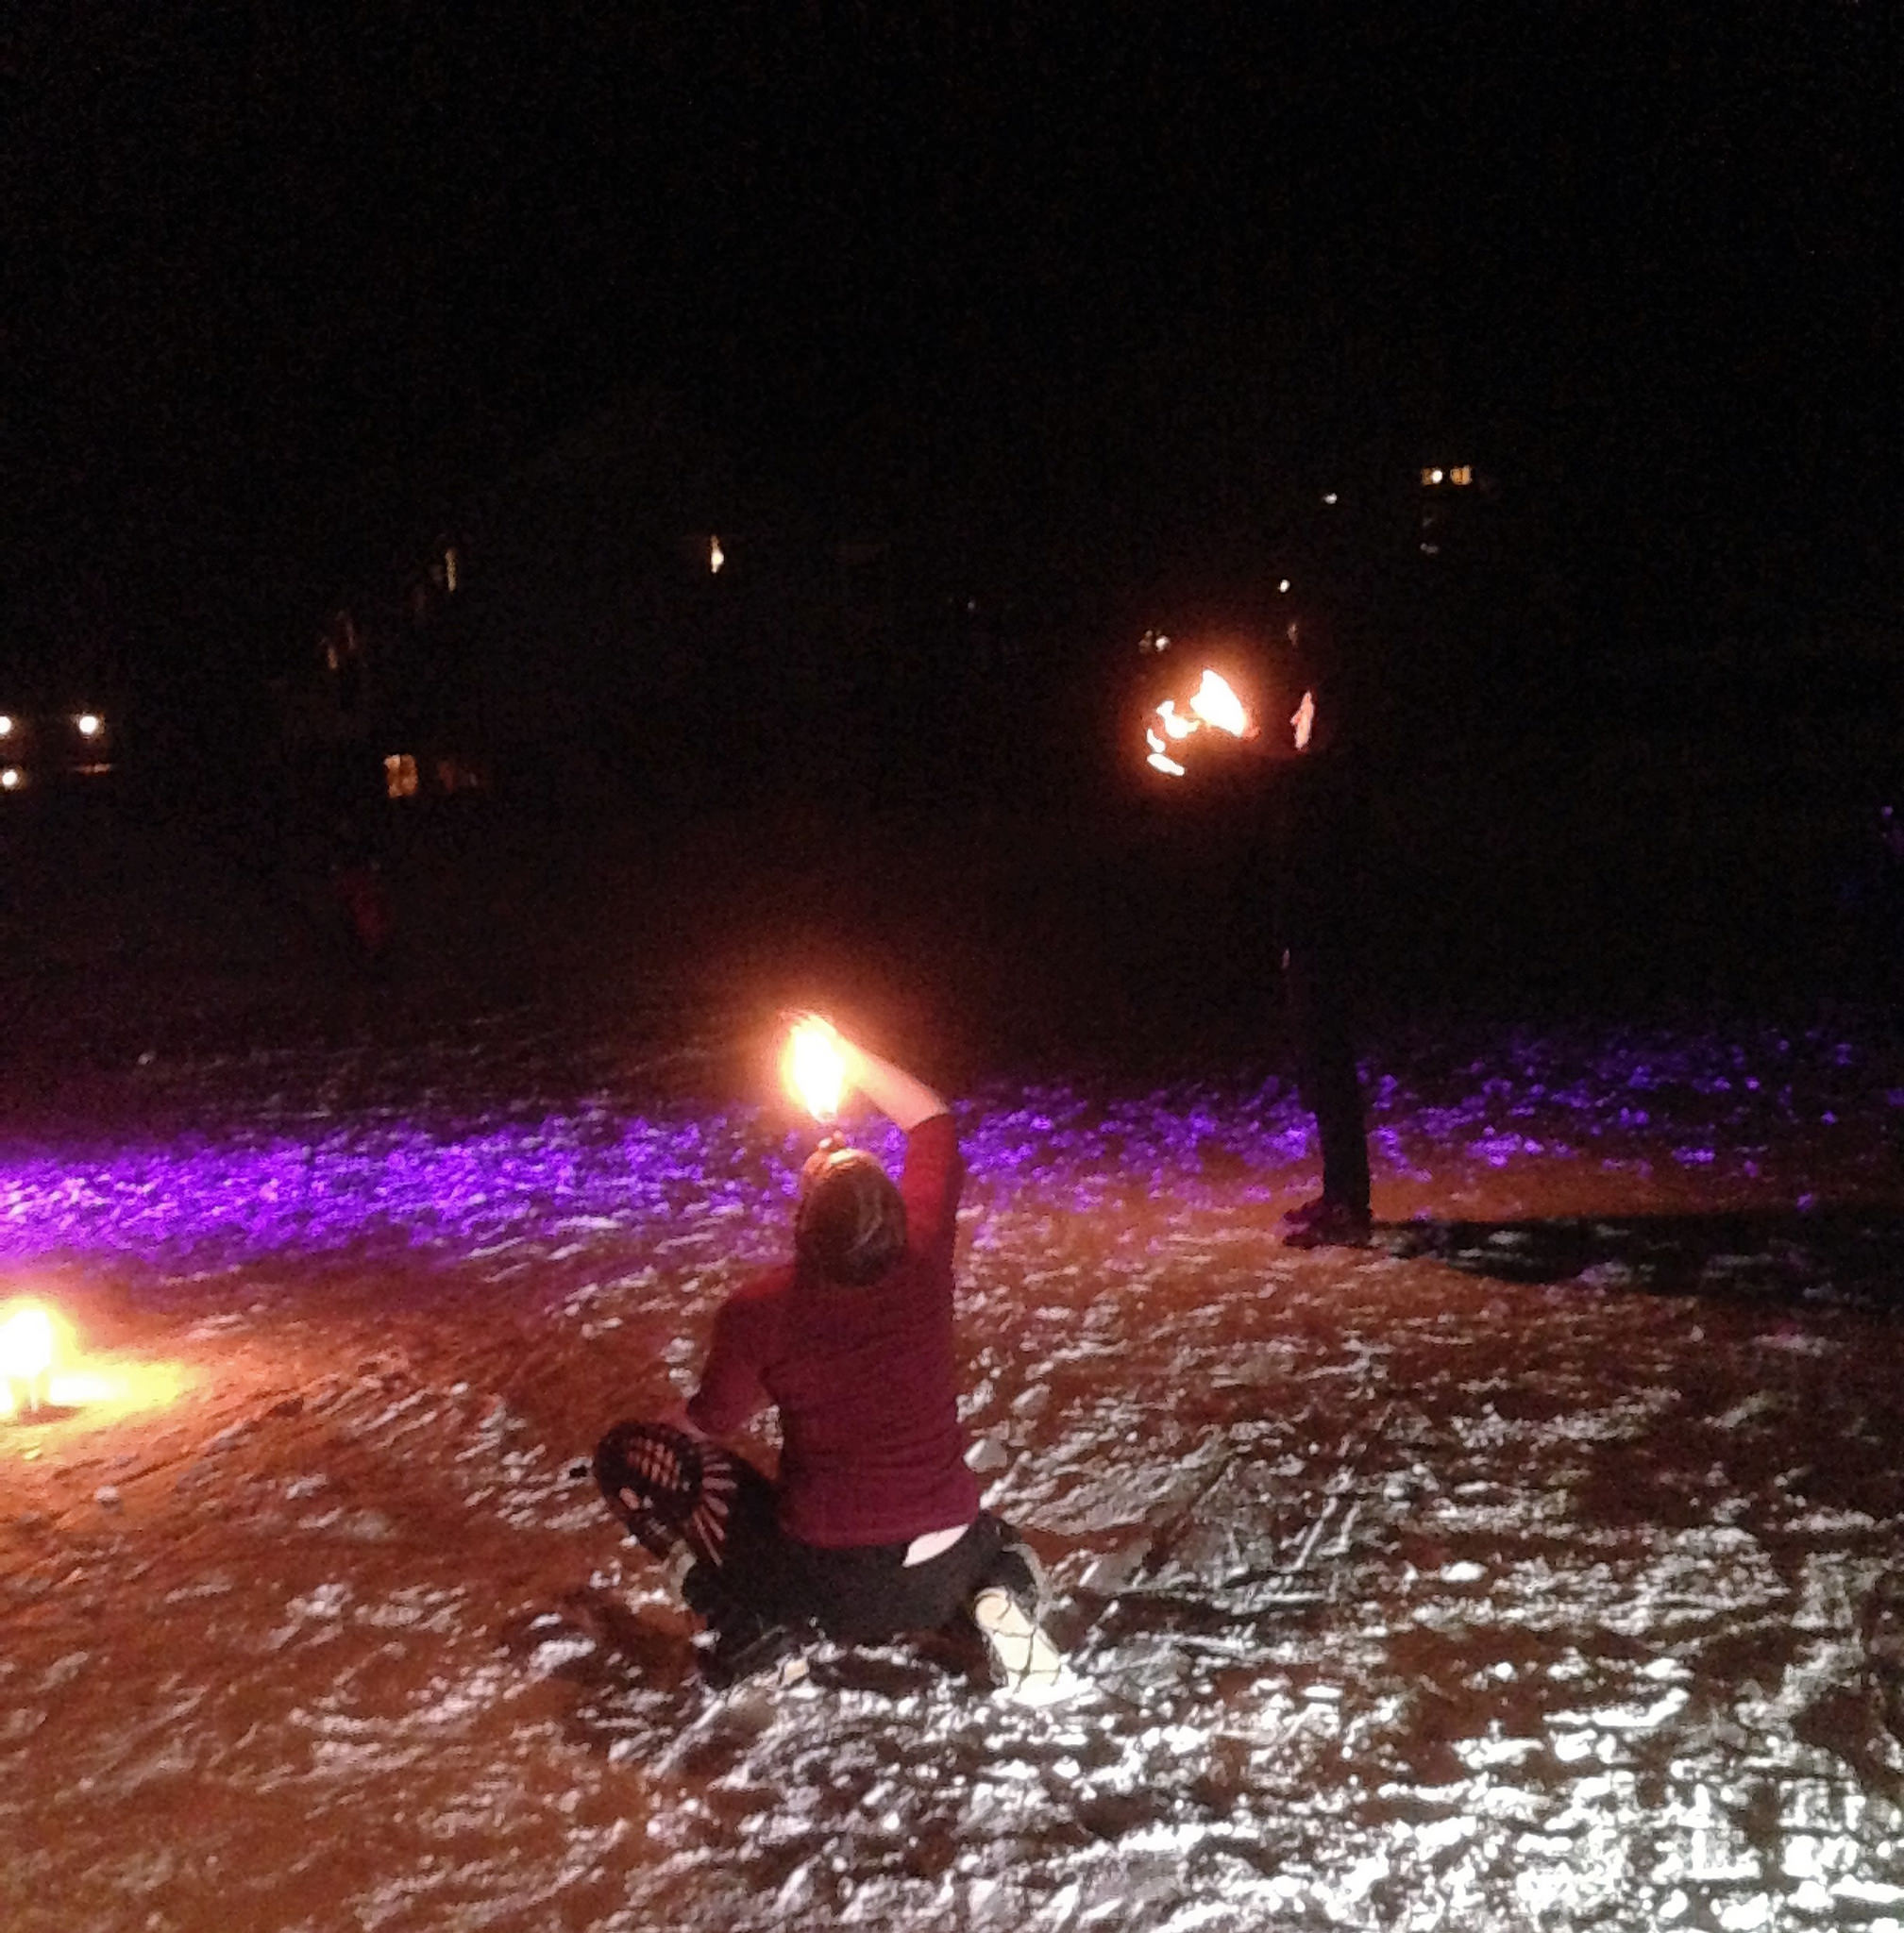 smuggs winter solstice party - fire eater